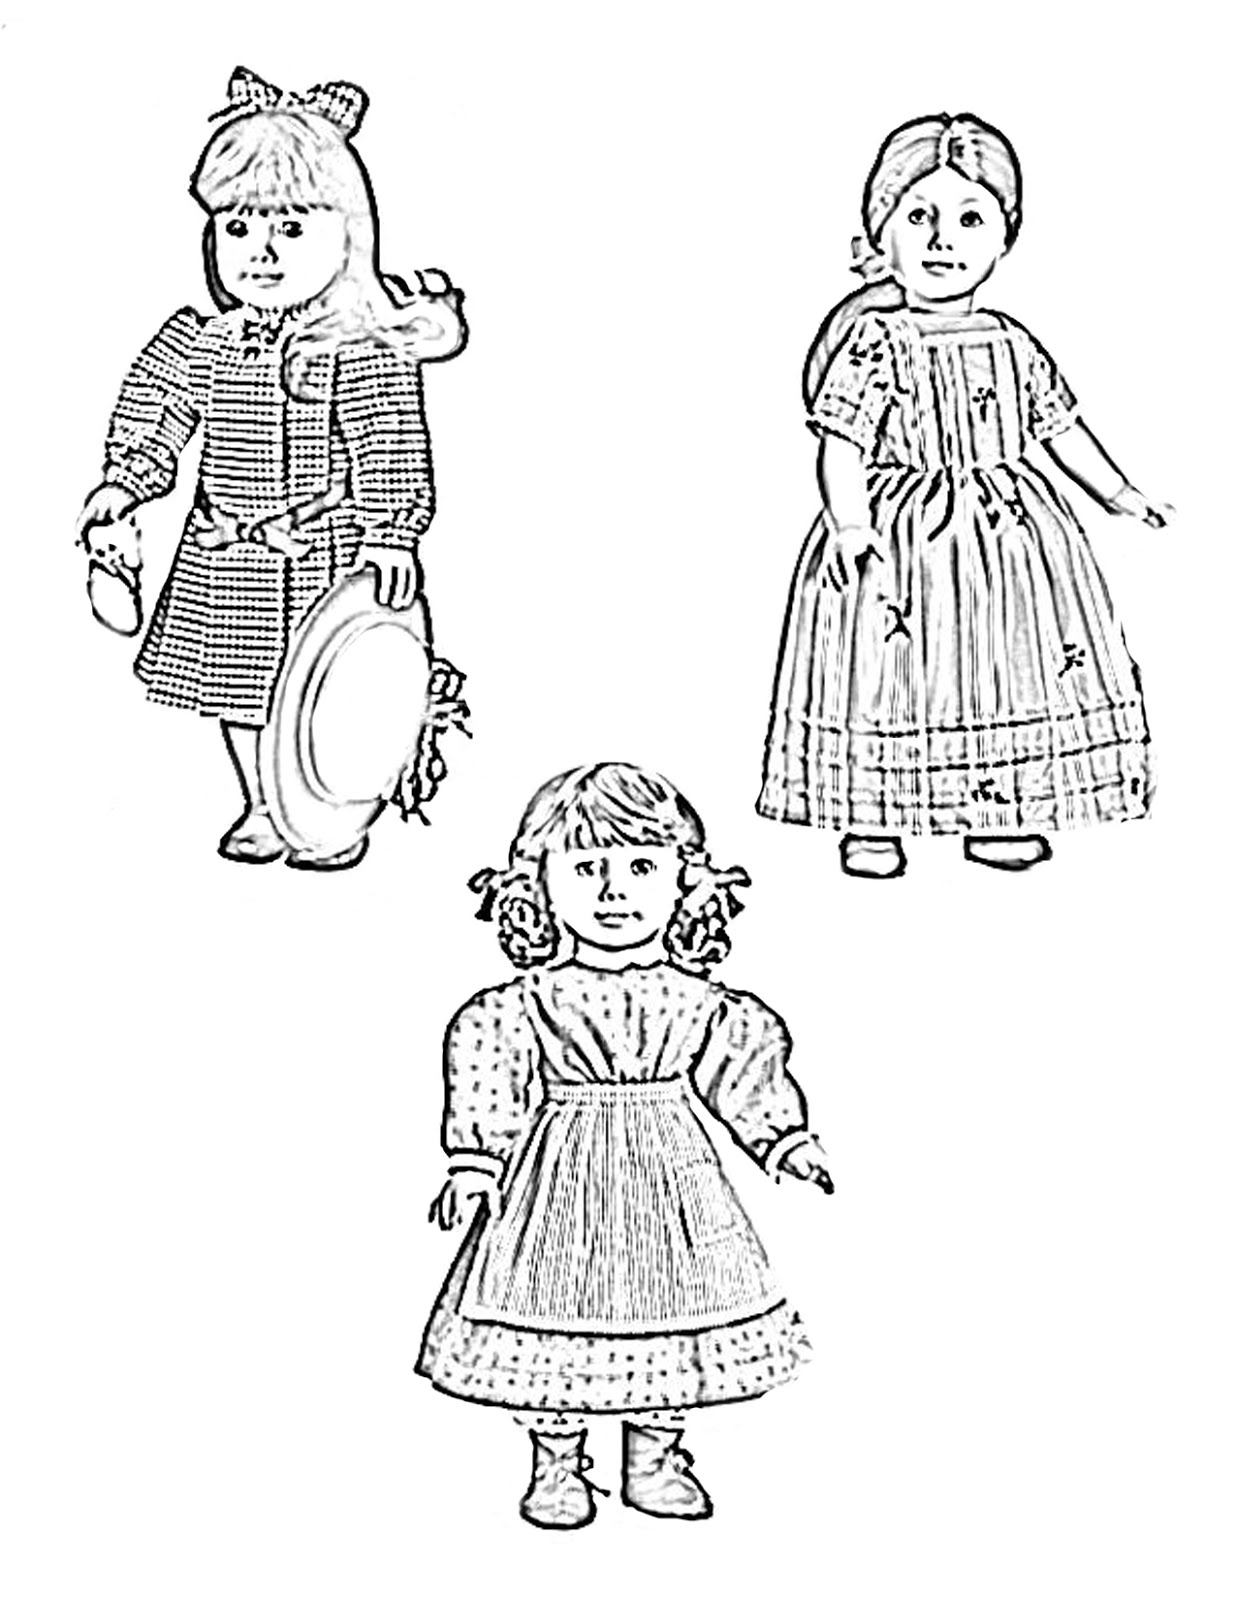 american girl elizabeth coloring pages - photo#4